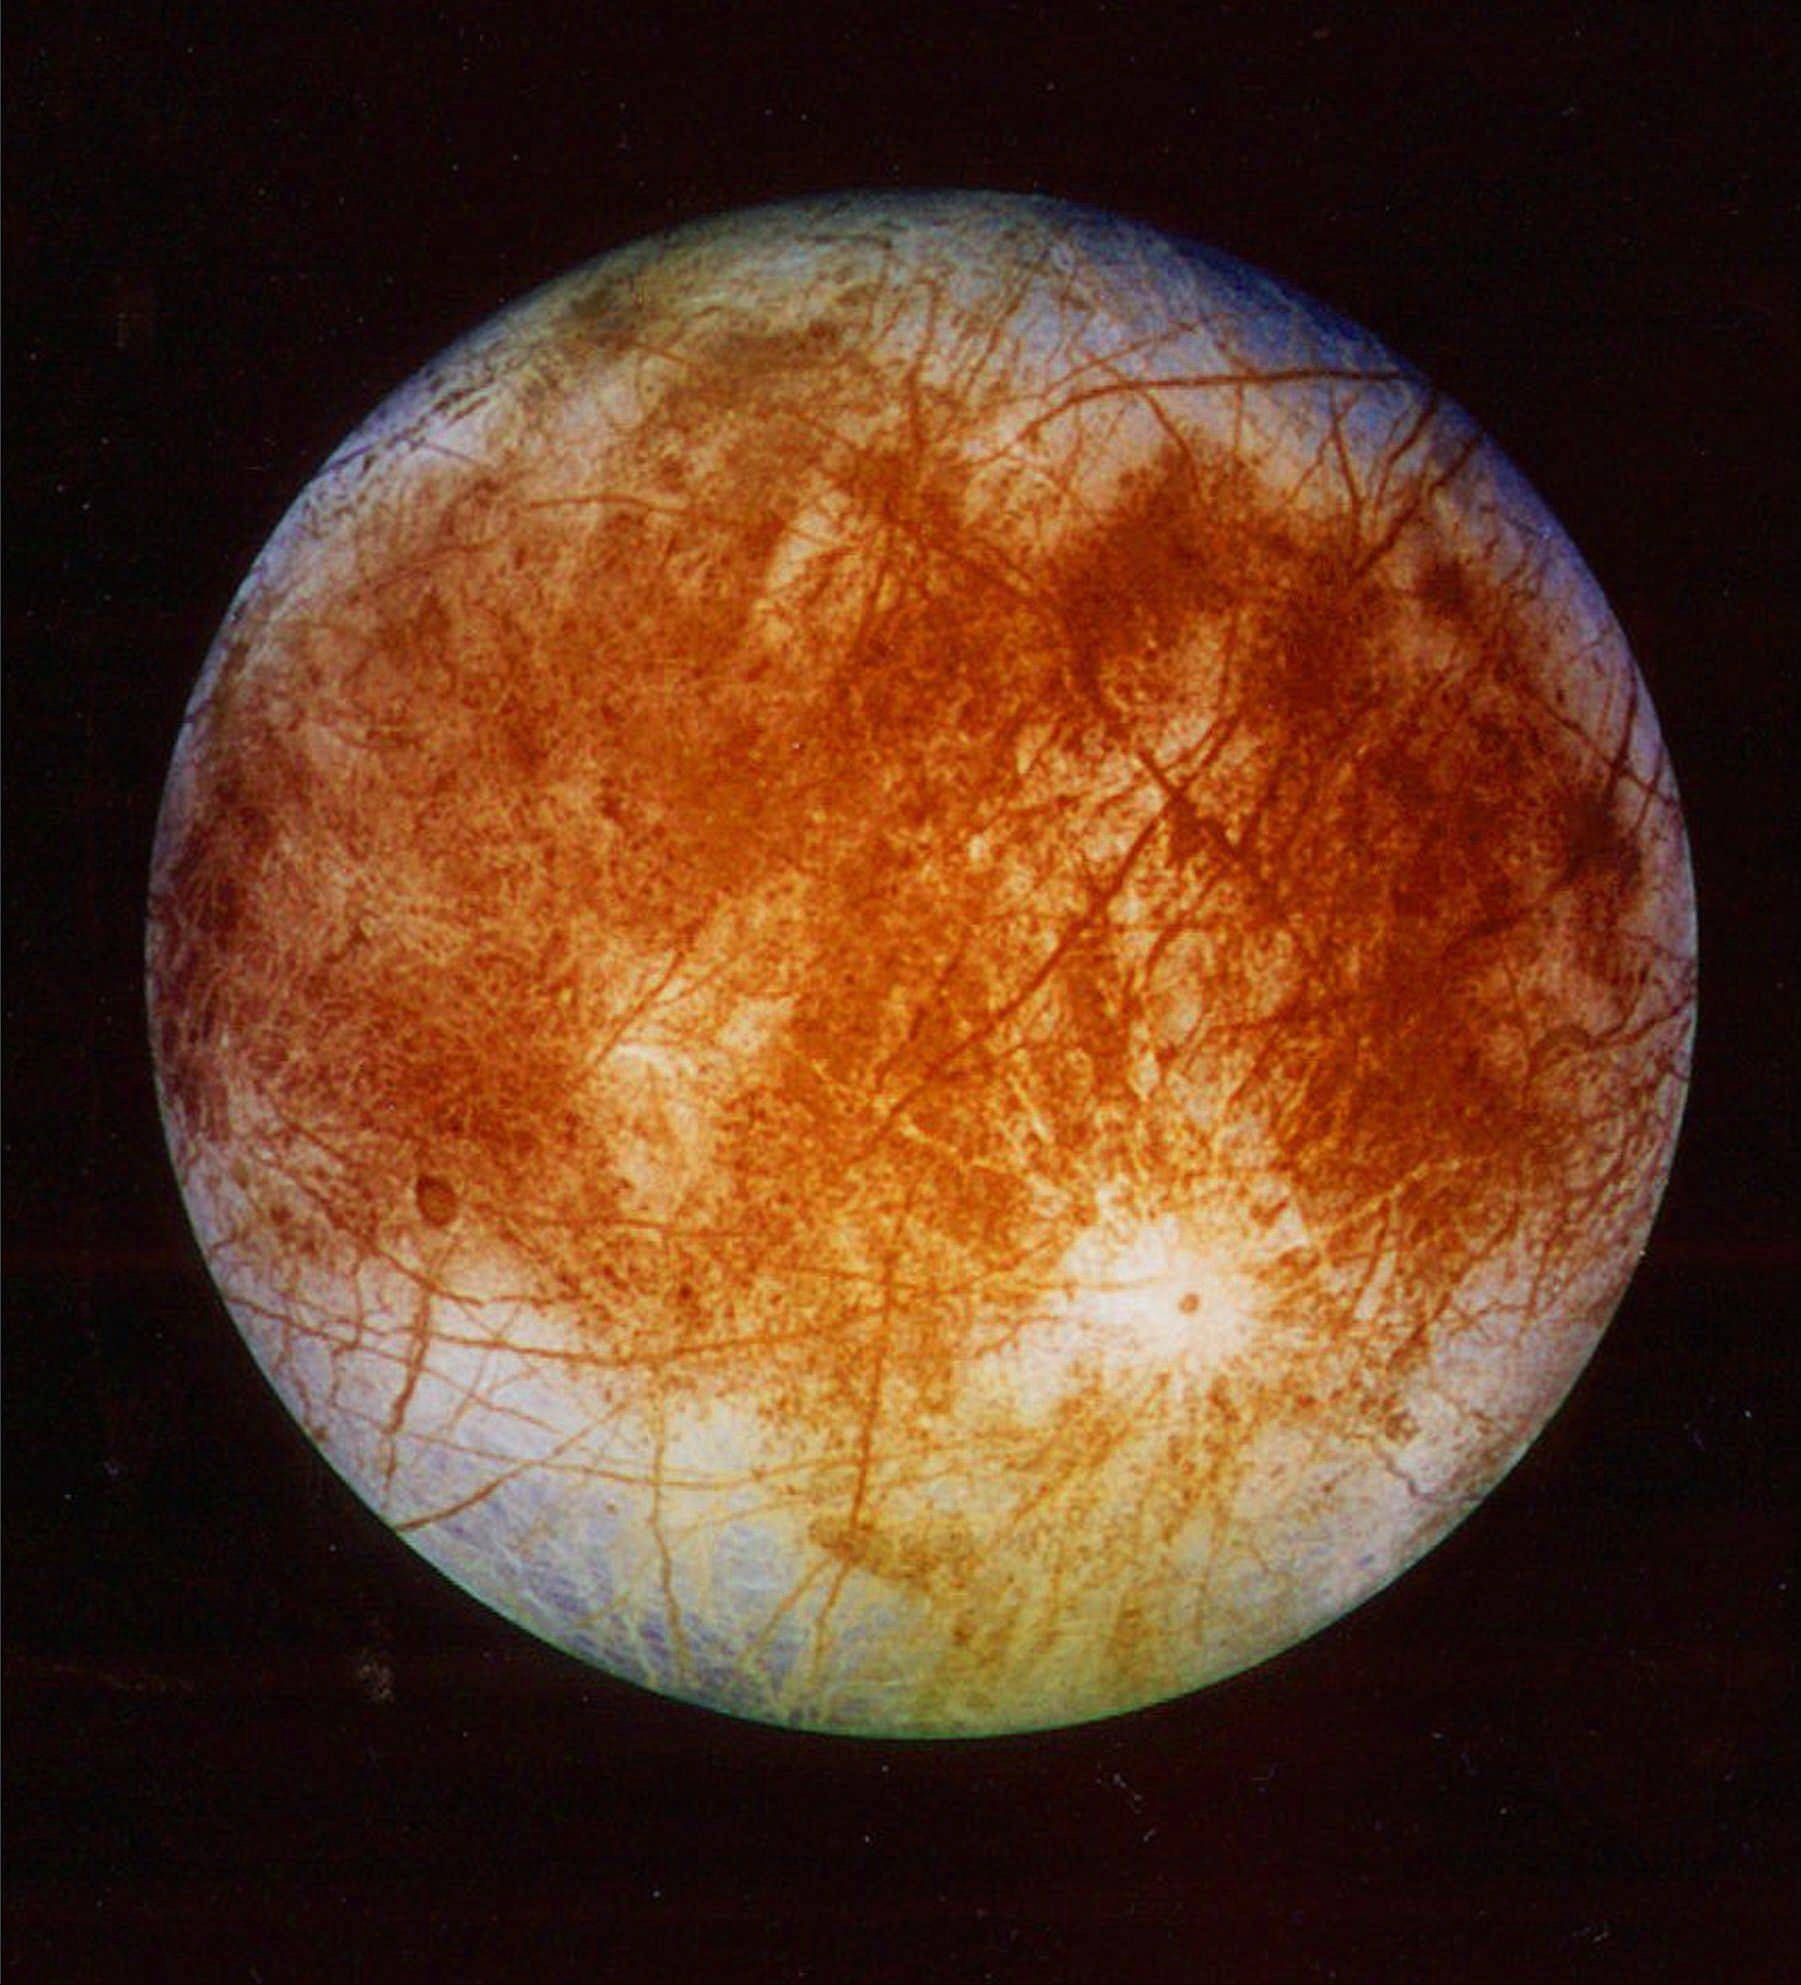 Europa, a moon of Jupiter first discovered by Galileo, has long been a subject of interest to scientists because of the presence of water there. Water is believed to be a necessary ingredient for life to exist.